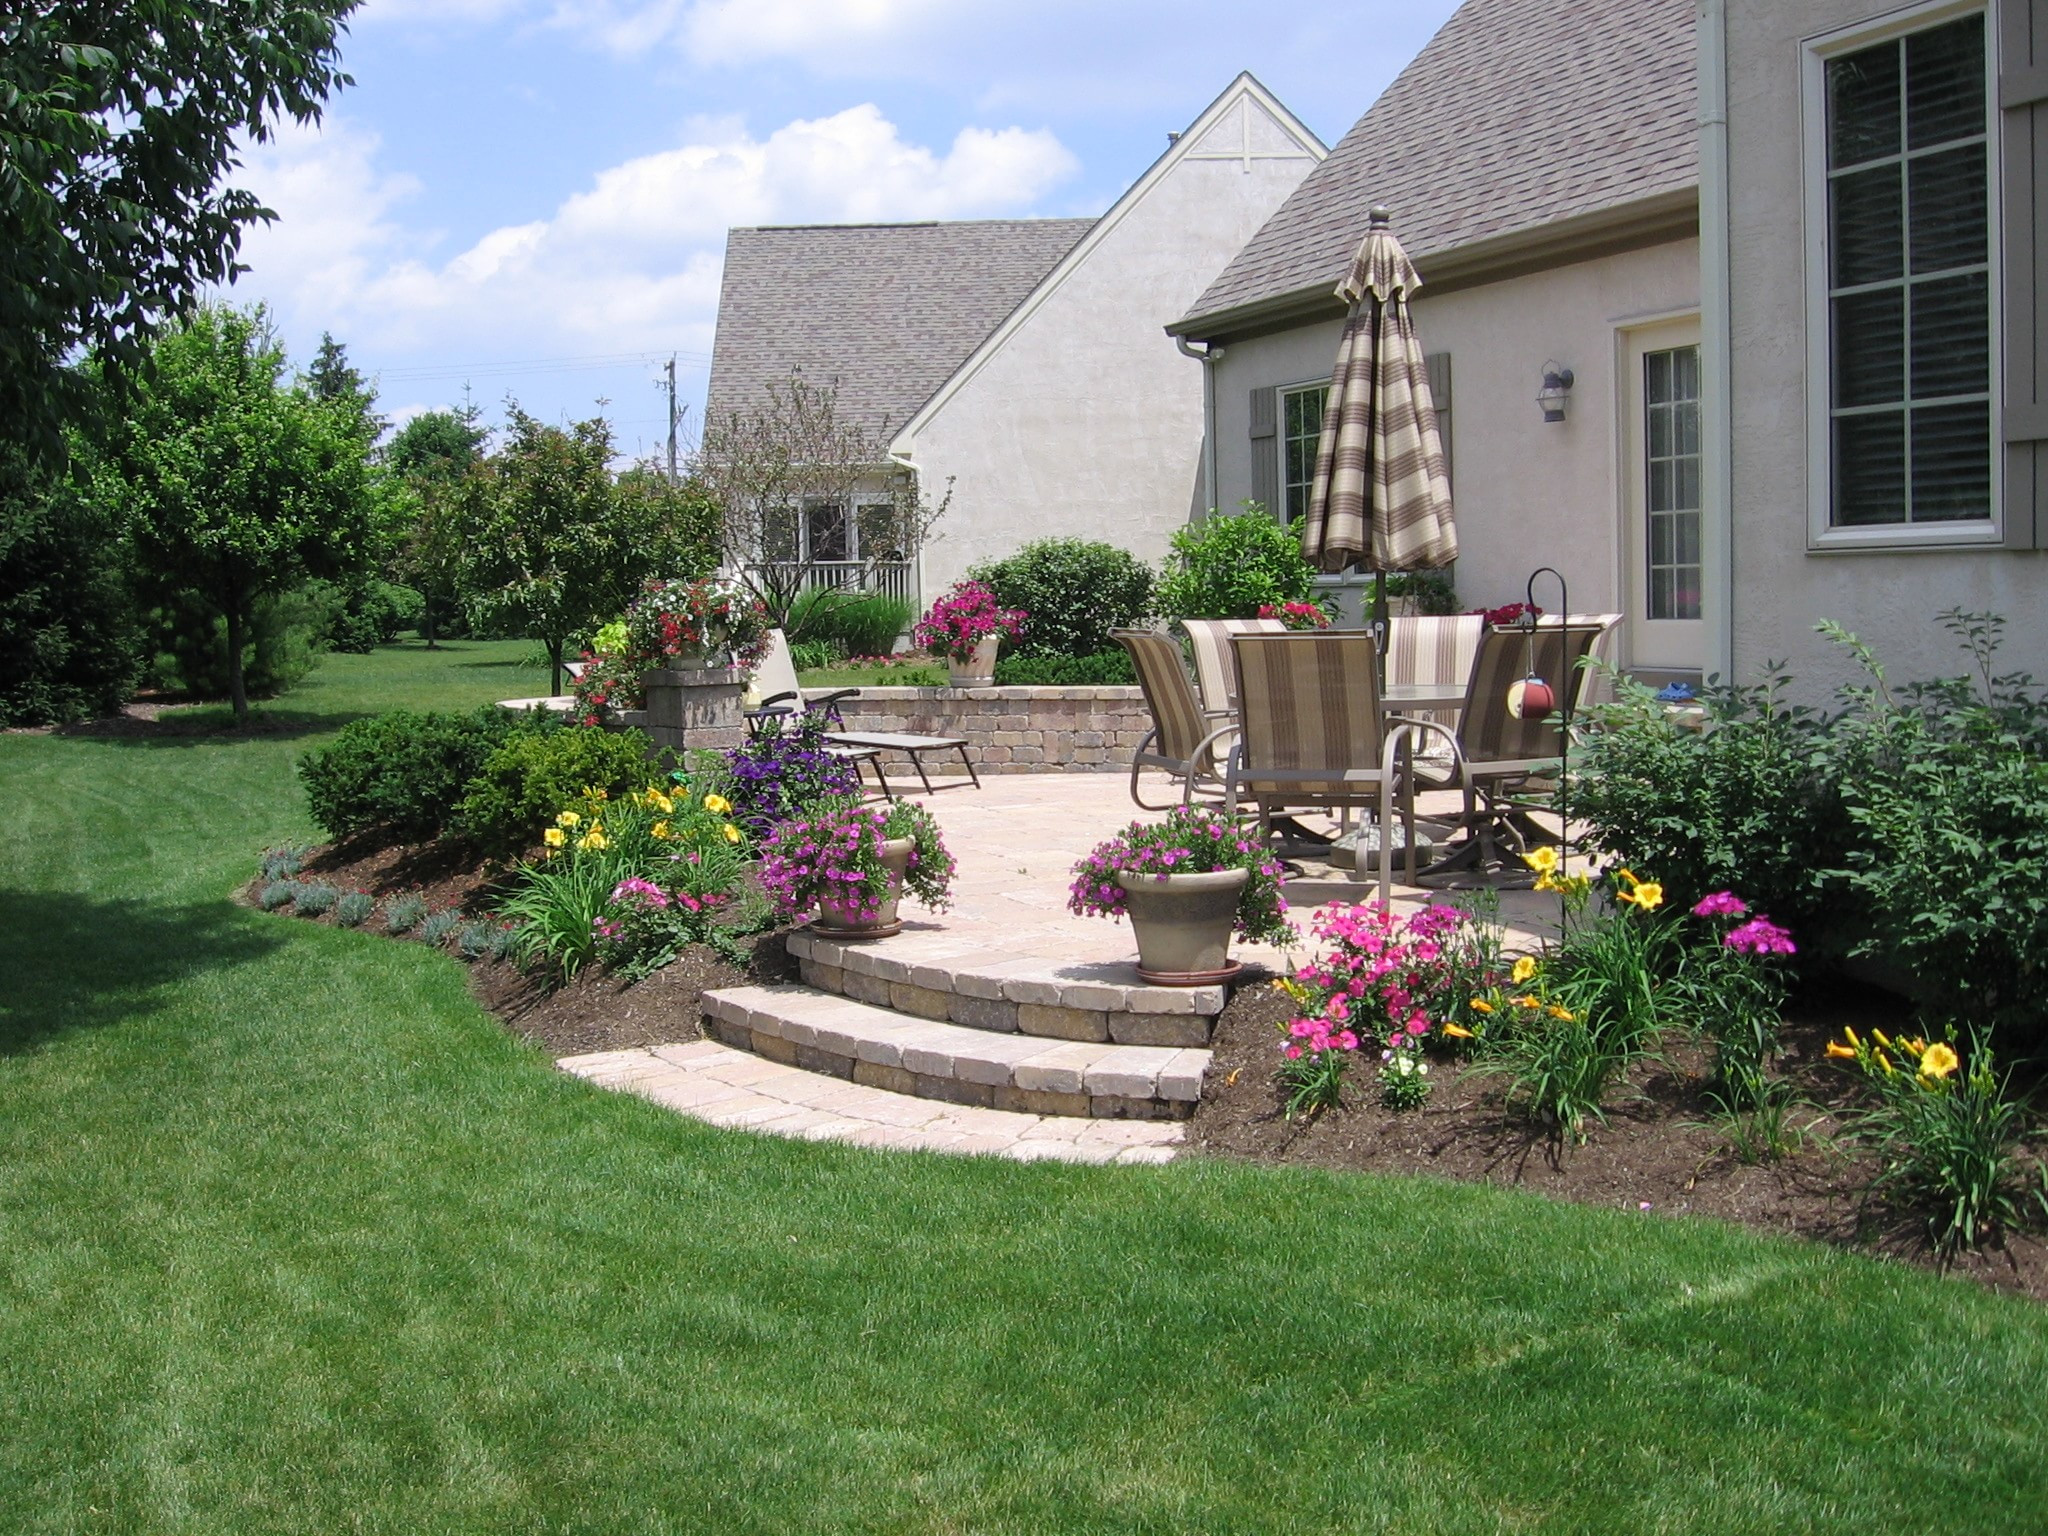 Landscaping Around Patio Luxury Pave Your Way to Better Living Buck and sons Landscape